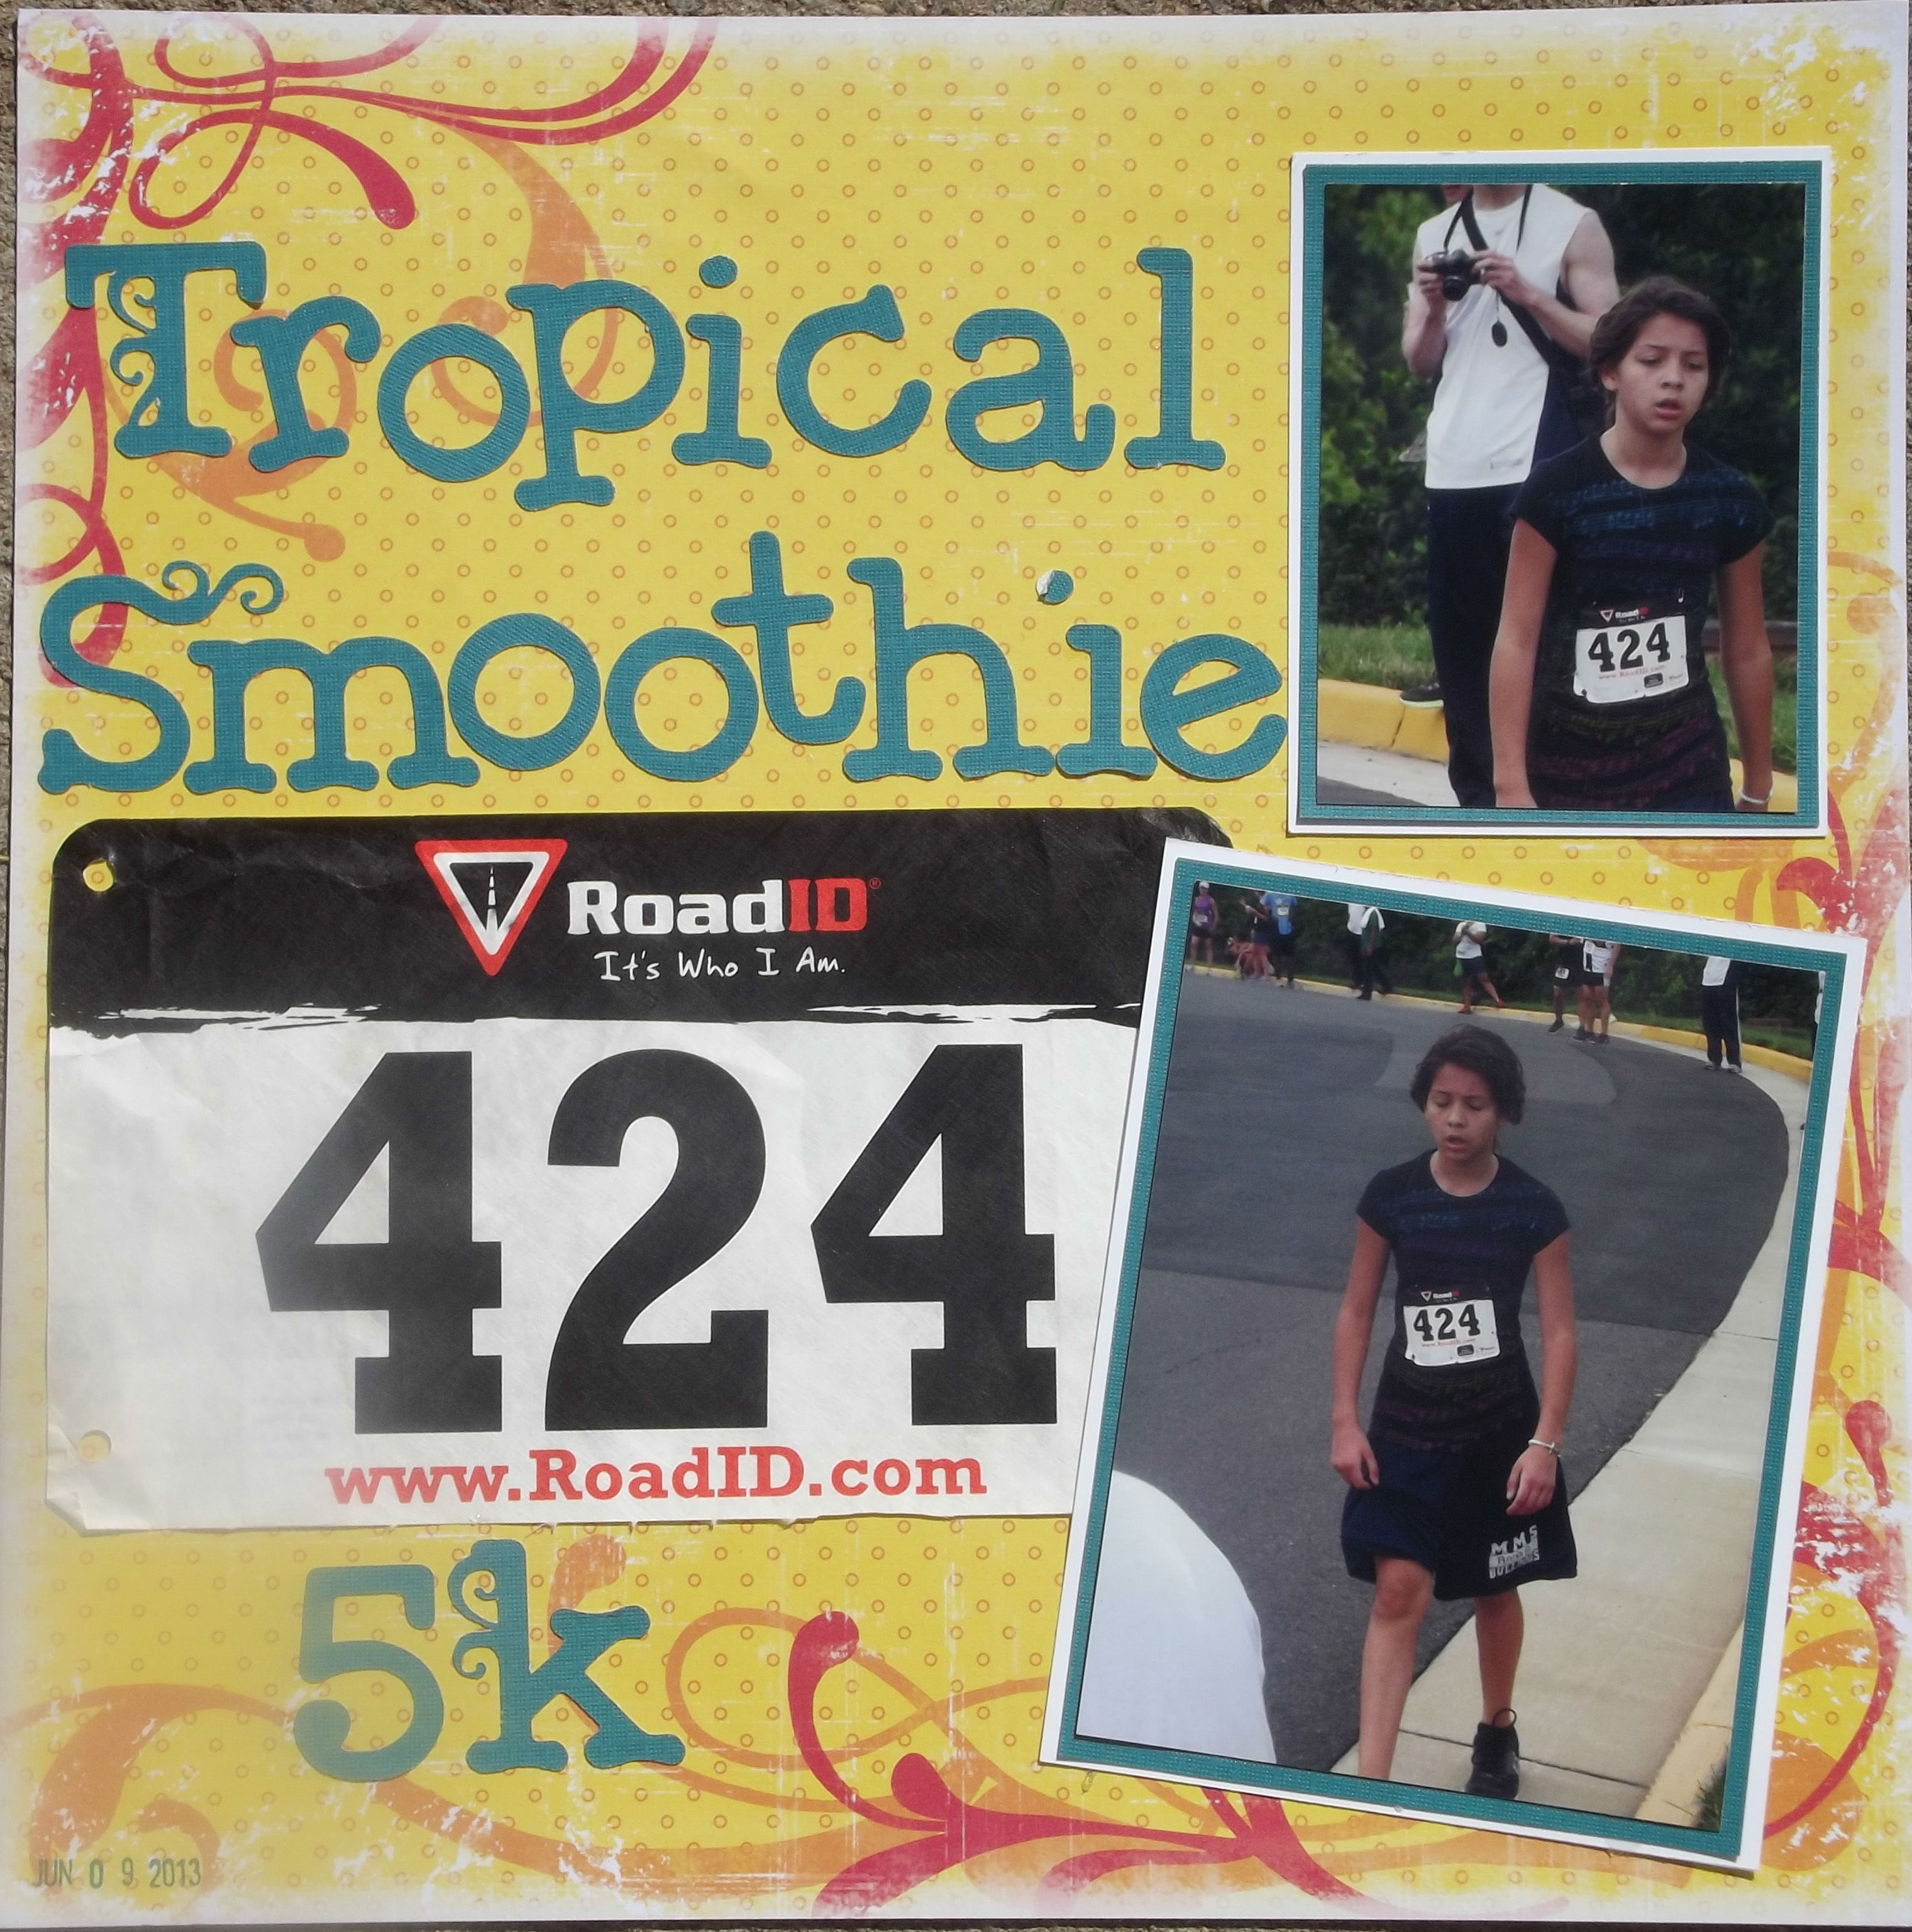 Tropical smoothie 5k layout with images